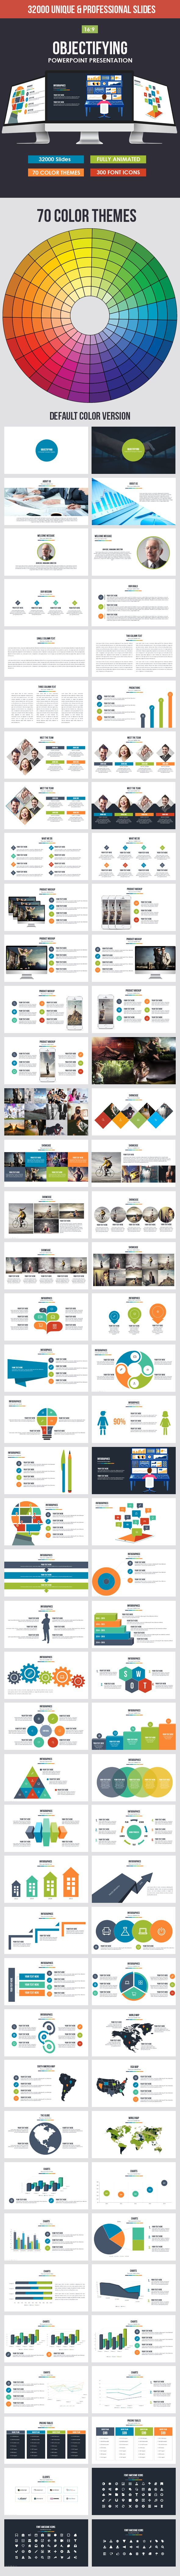 Objectifying keynote template ccuart Gallery